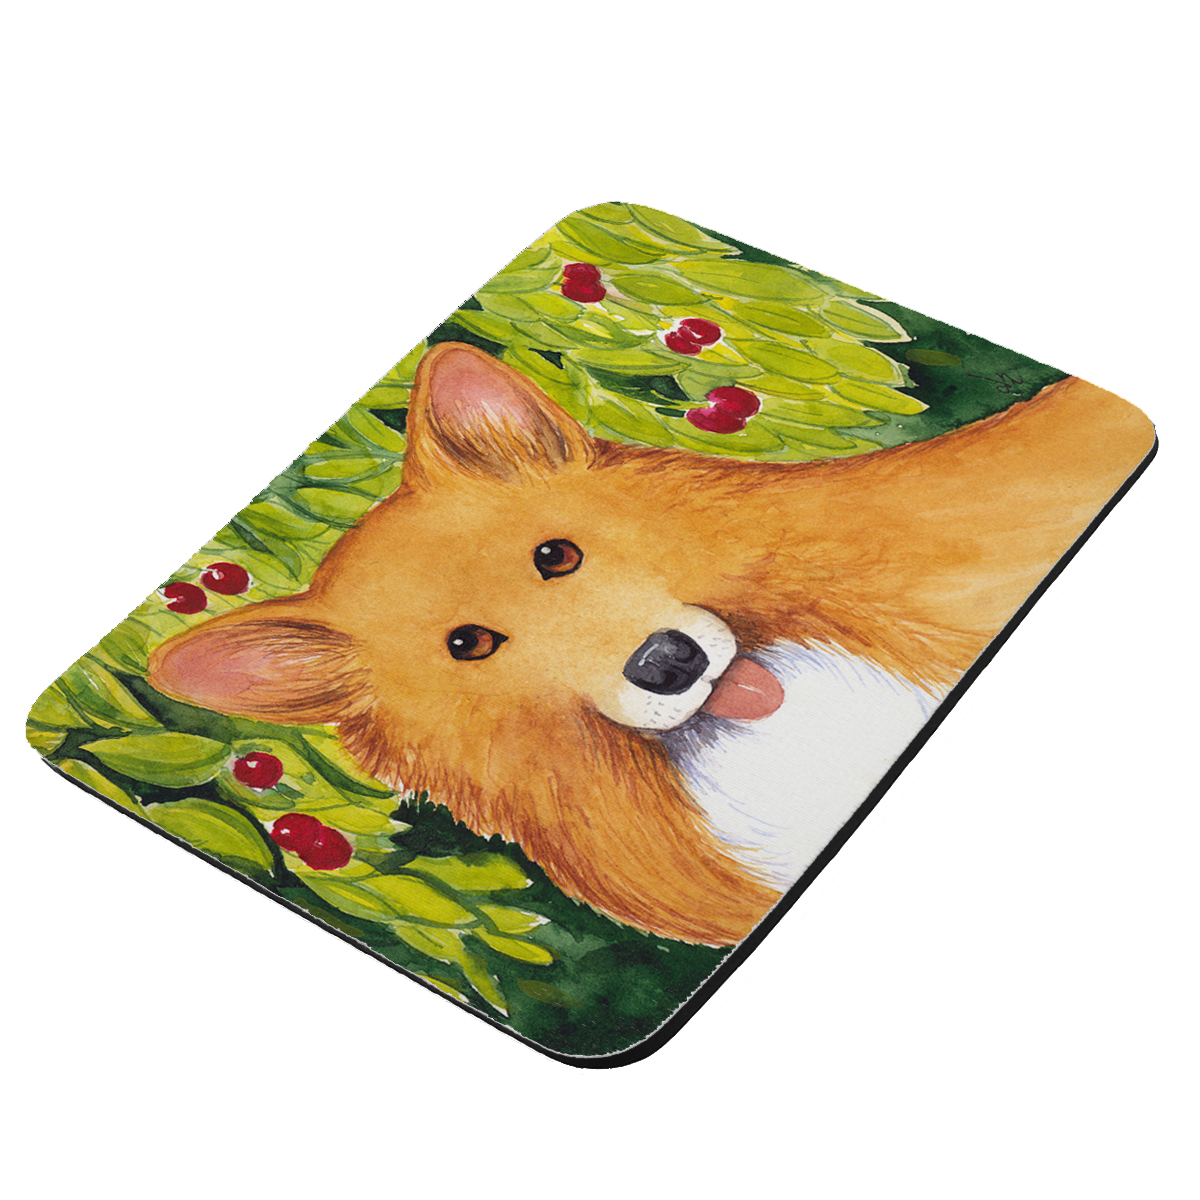 Welsh Corgi with Cherries Art by Denise Every - KuzmarK Mousepad / Hot Pad / Trivet